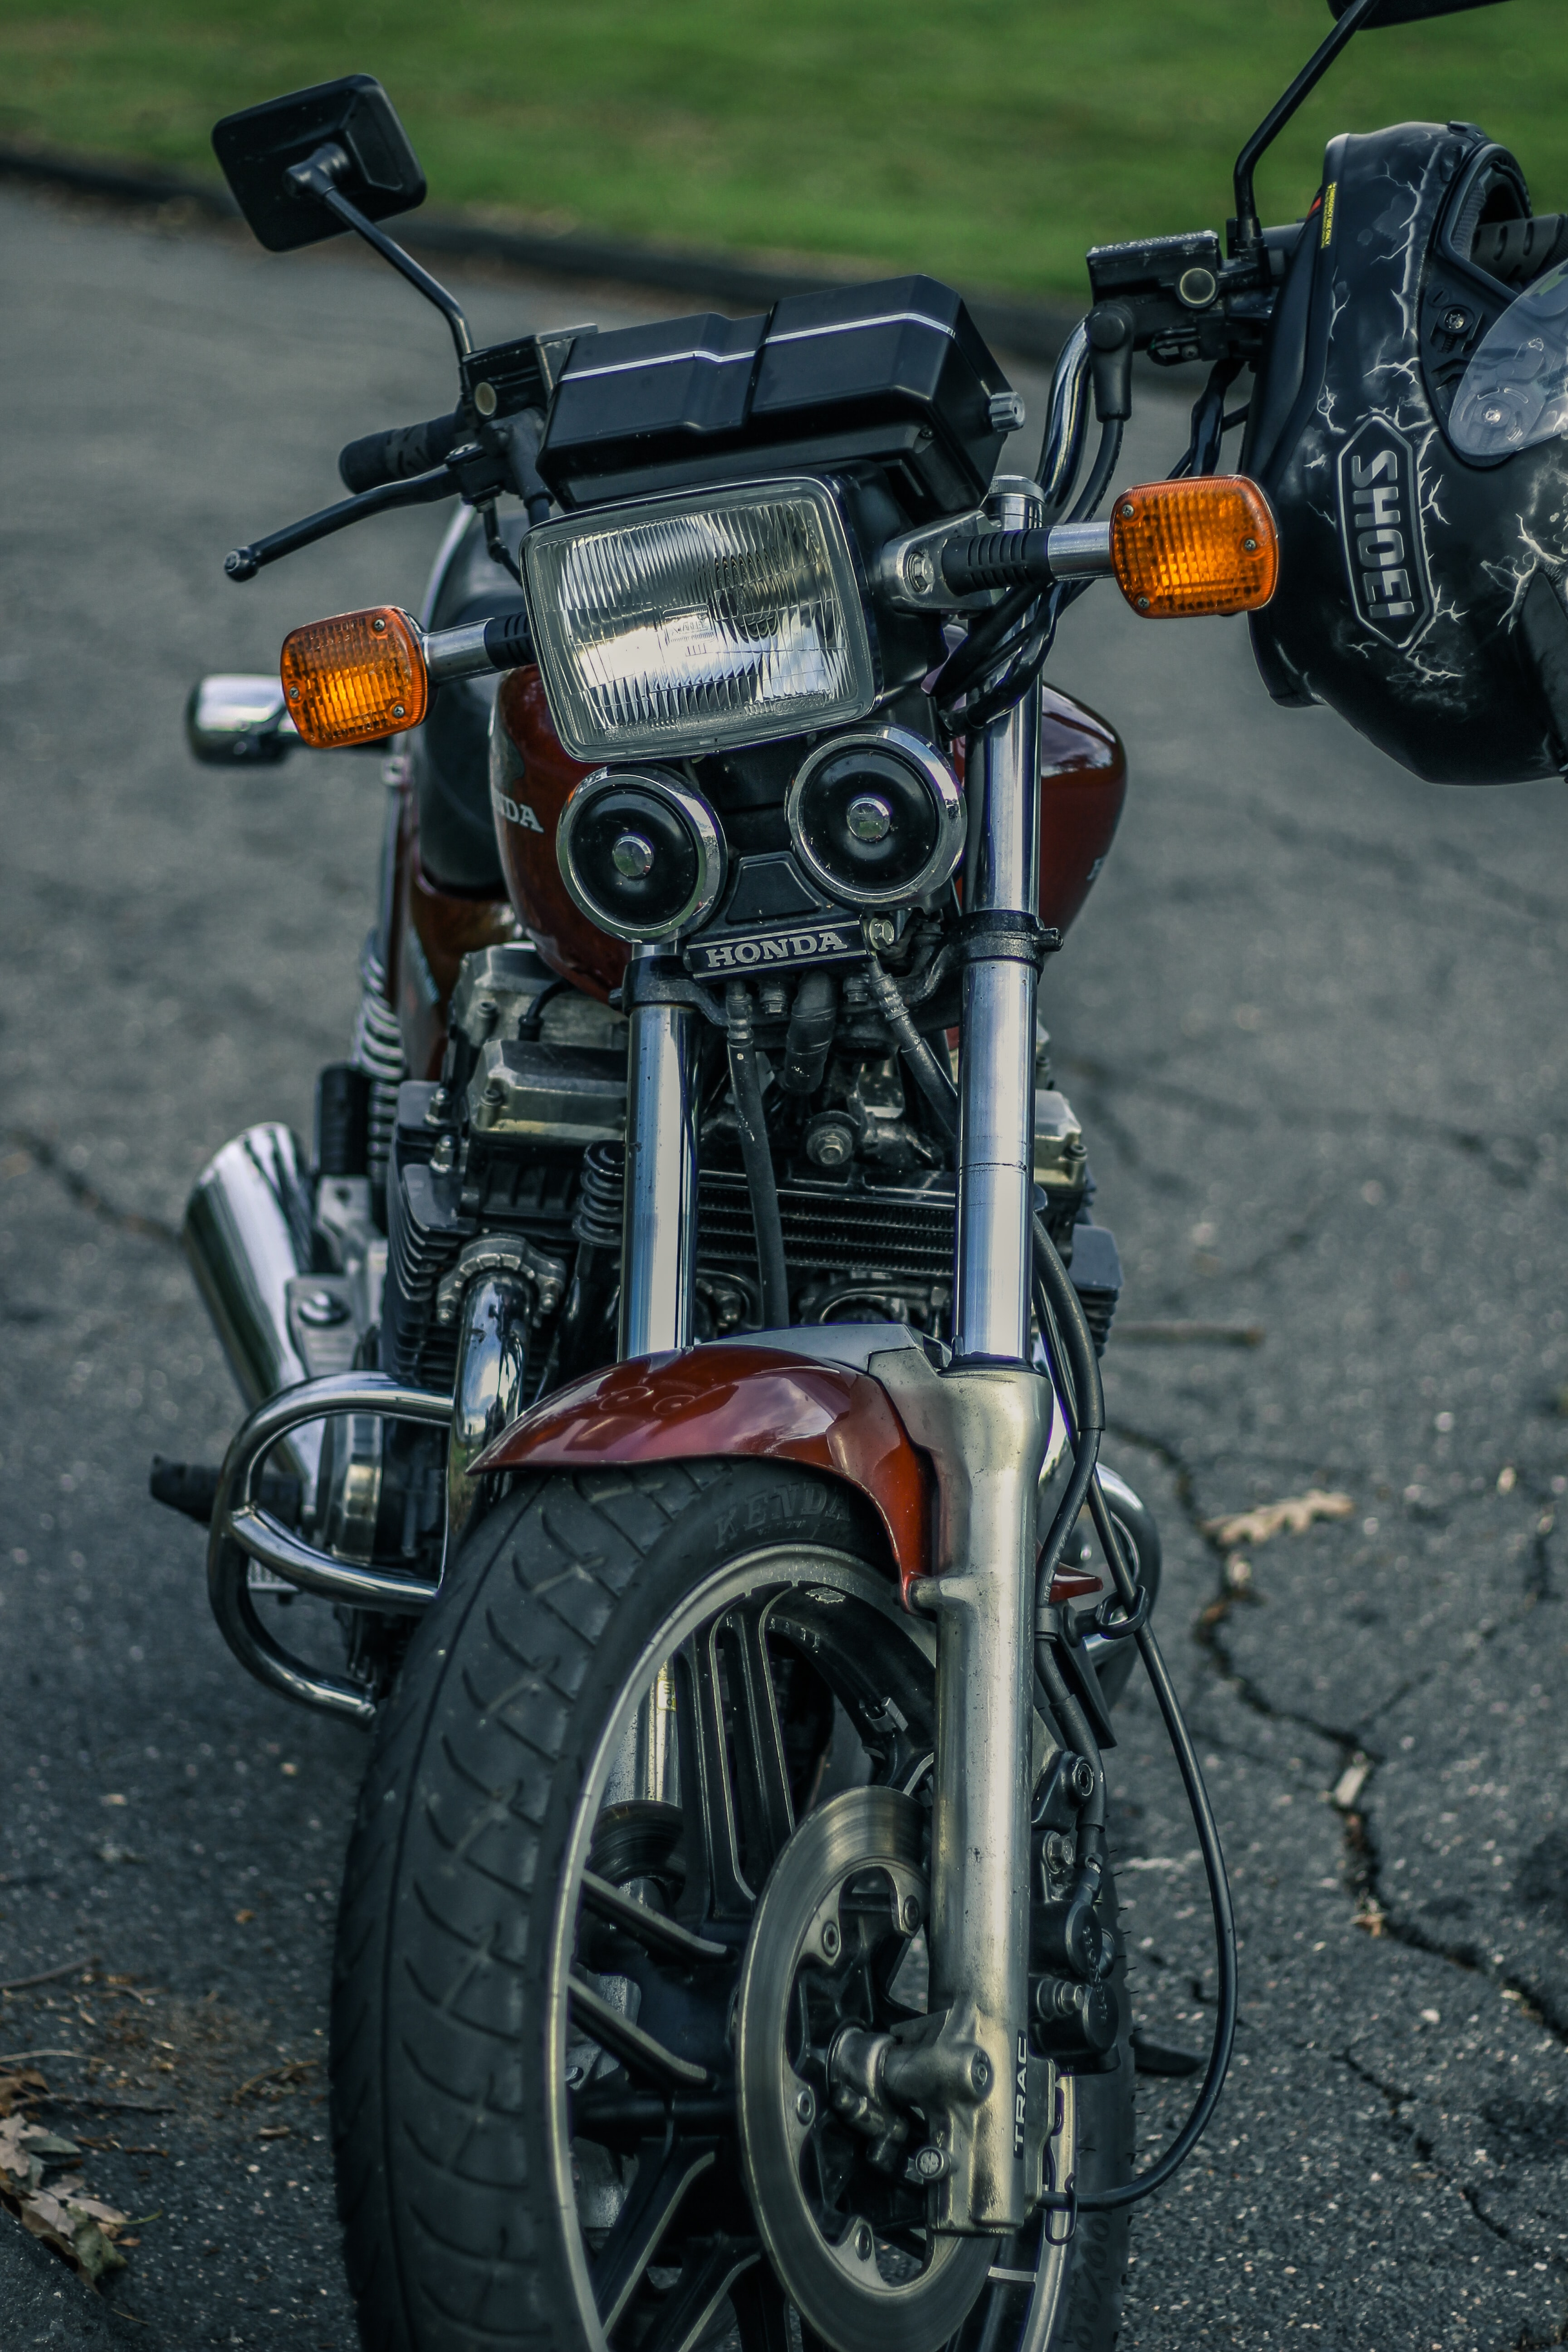 black and red Honda motorcycle on black concrete pavement